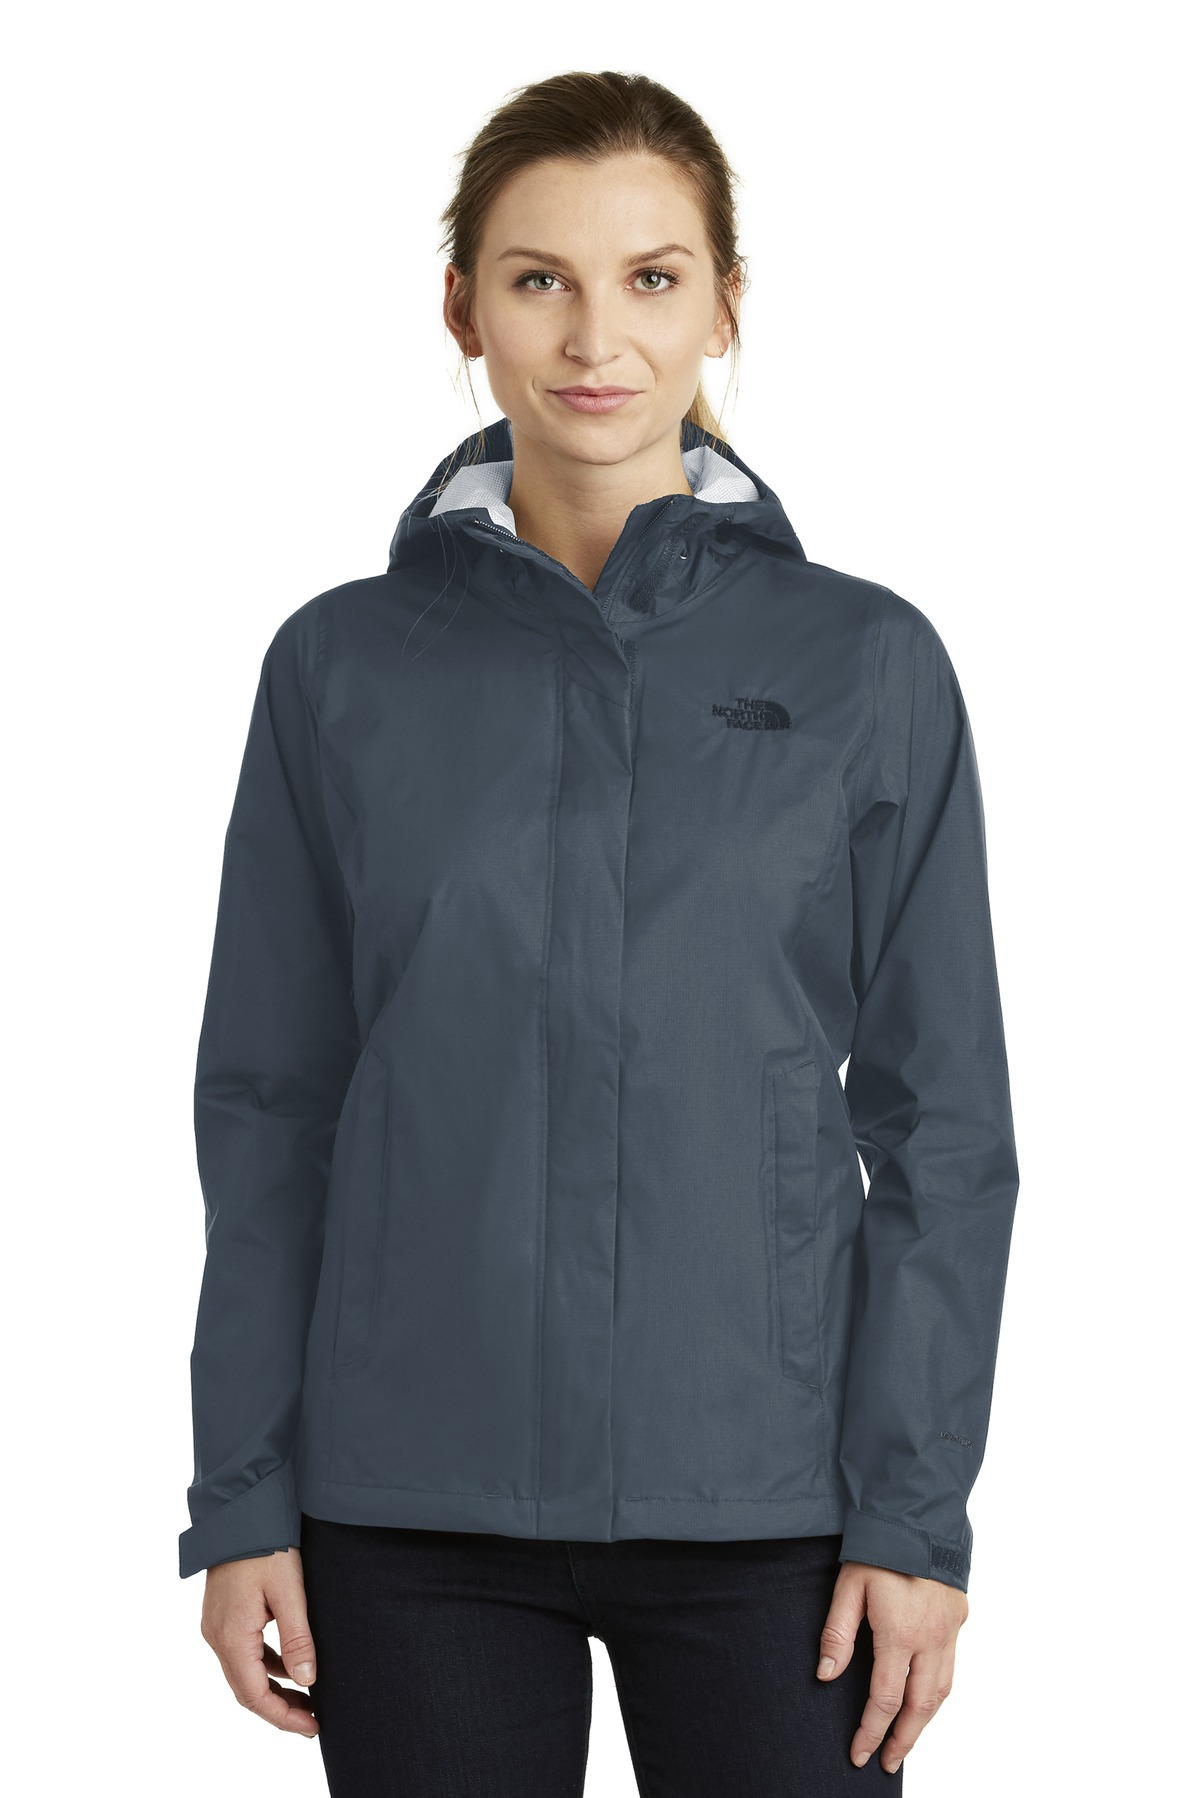 The North Face  ®  Ladies DryVent ™  Rain Jacket. NF0A3LH5 - Shady Blue